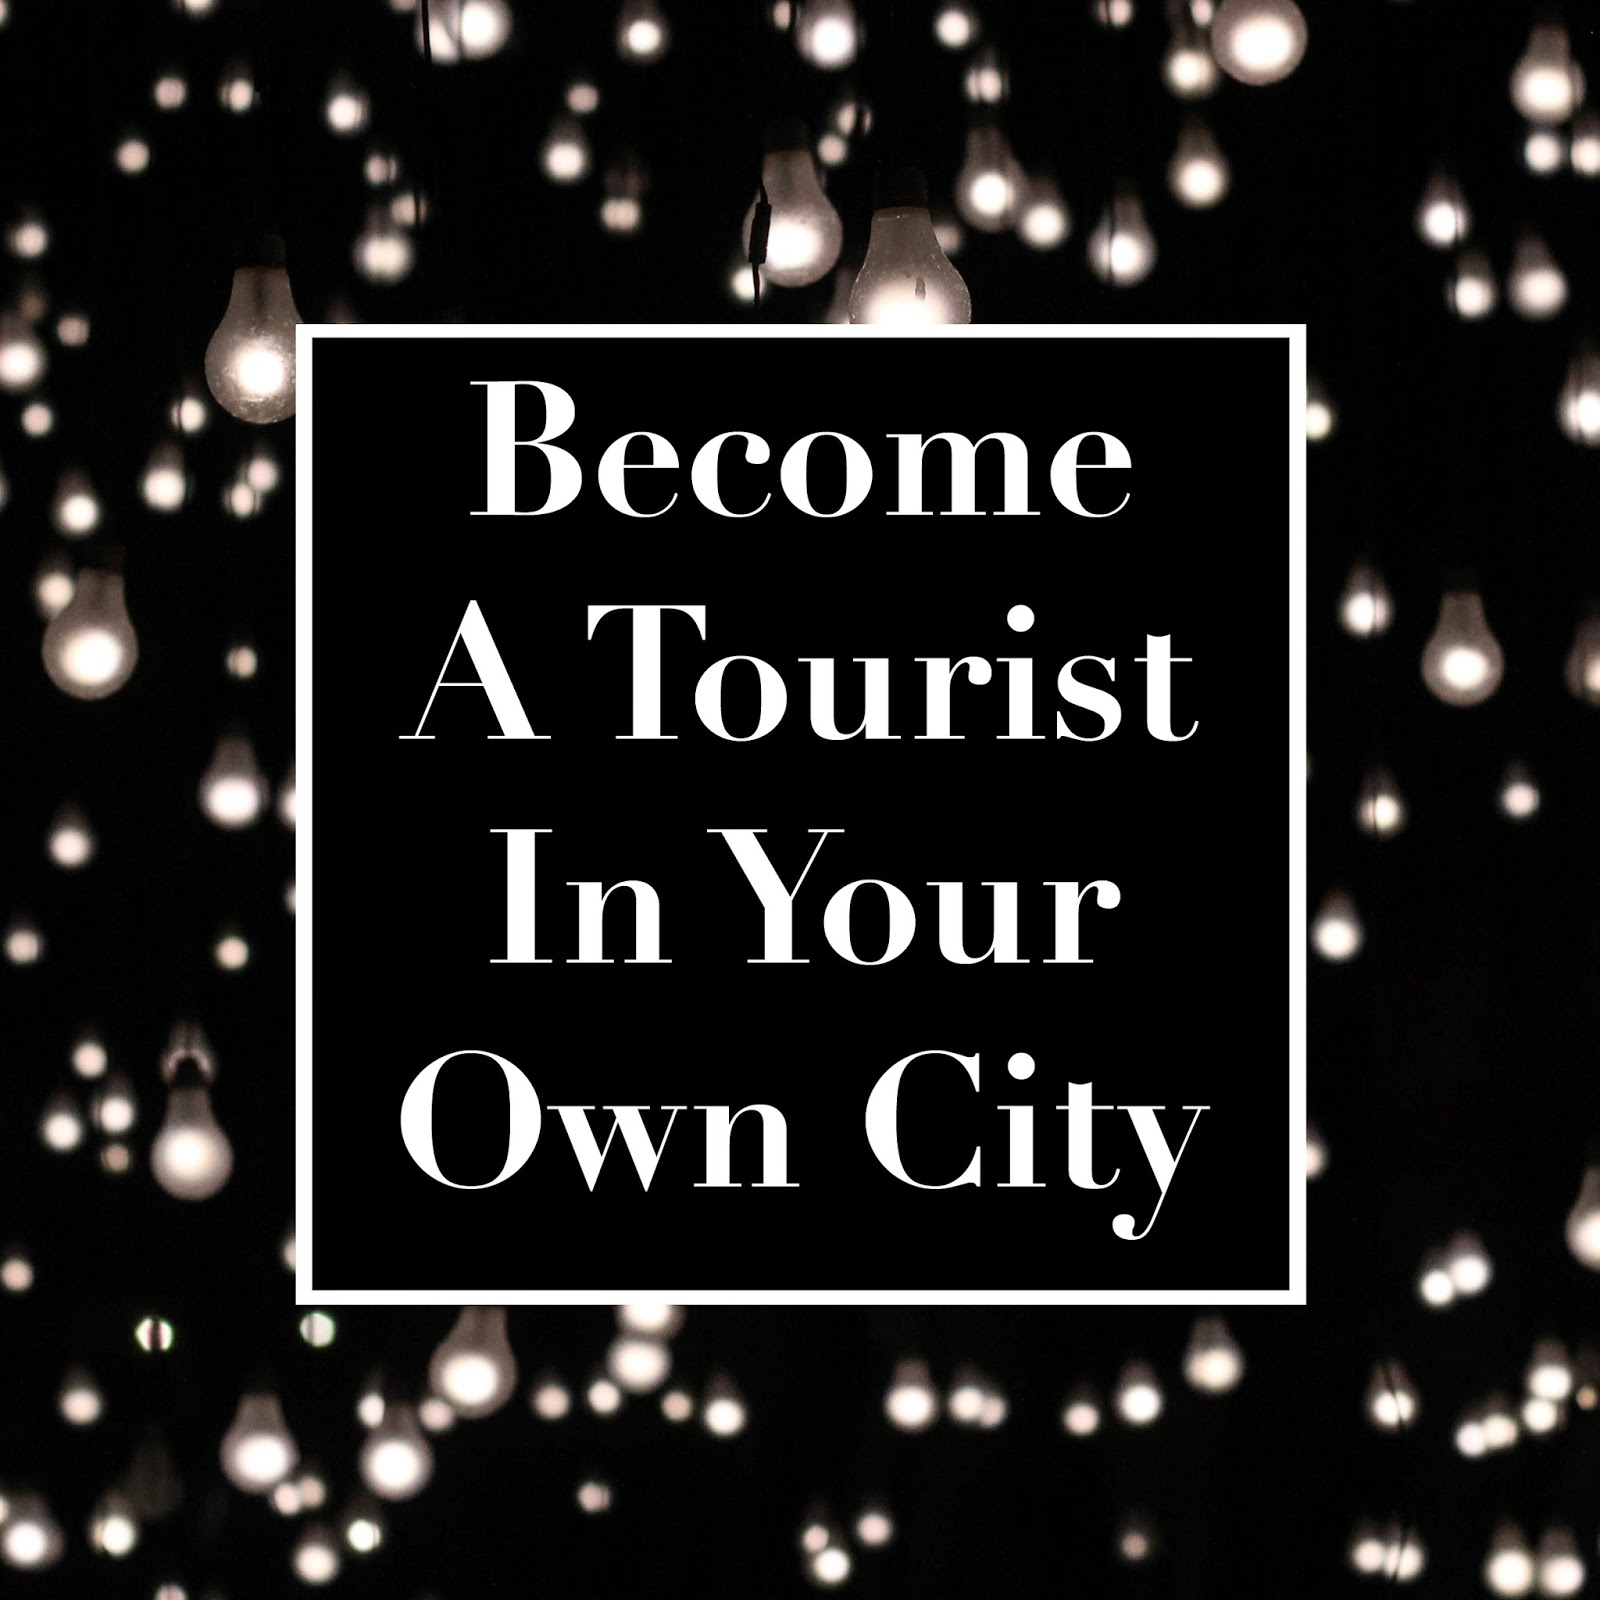 http://www.alixhamilton.com/2014/04/become-tourist-in-your-own-city.html